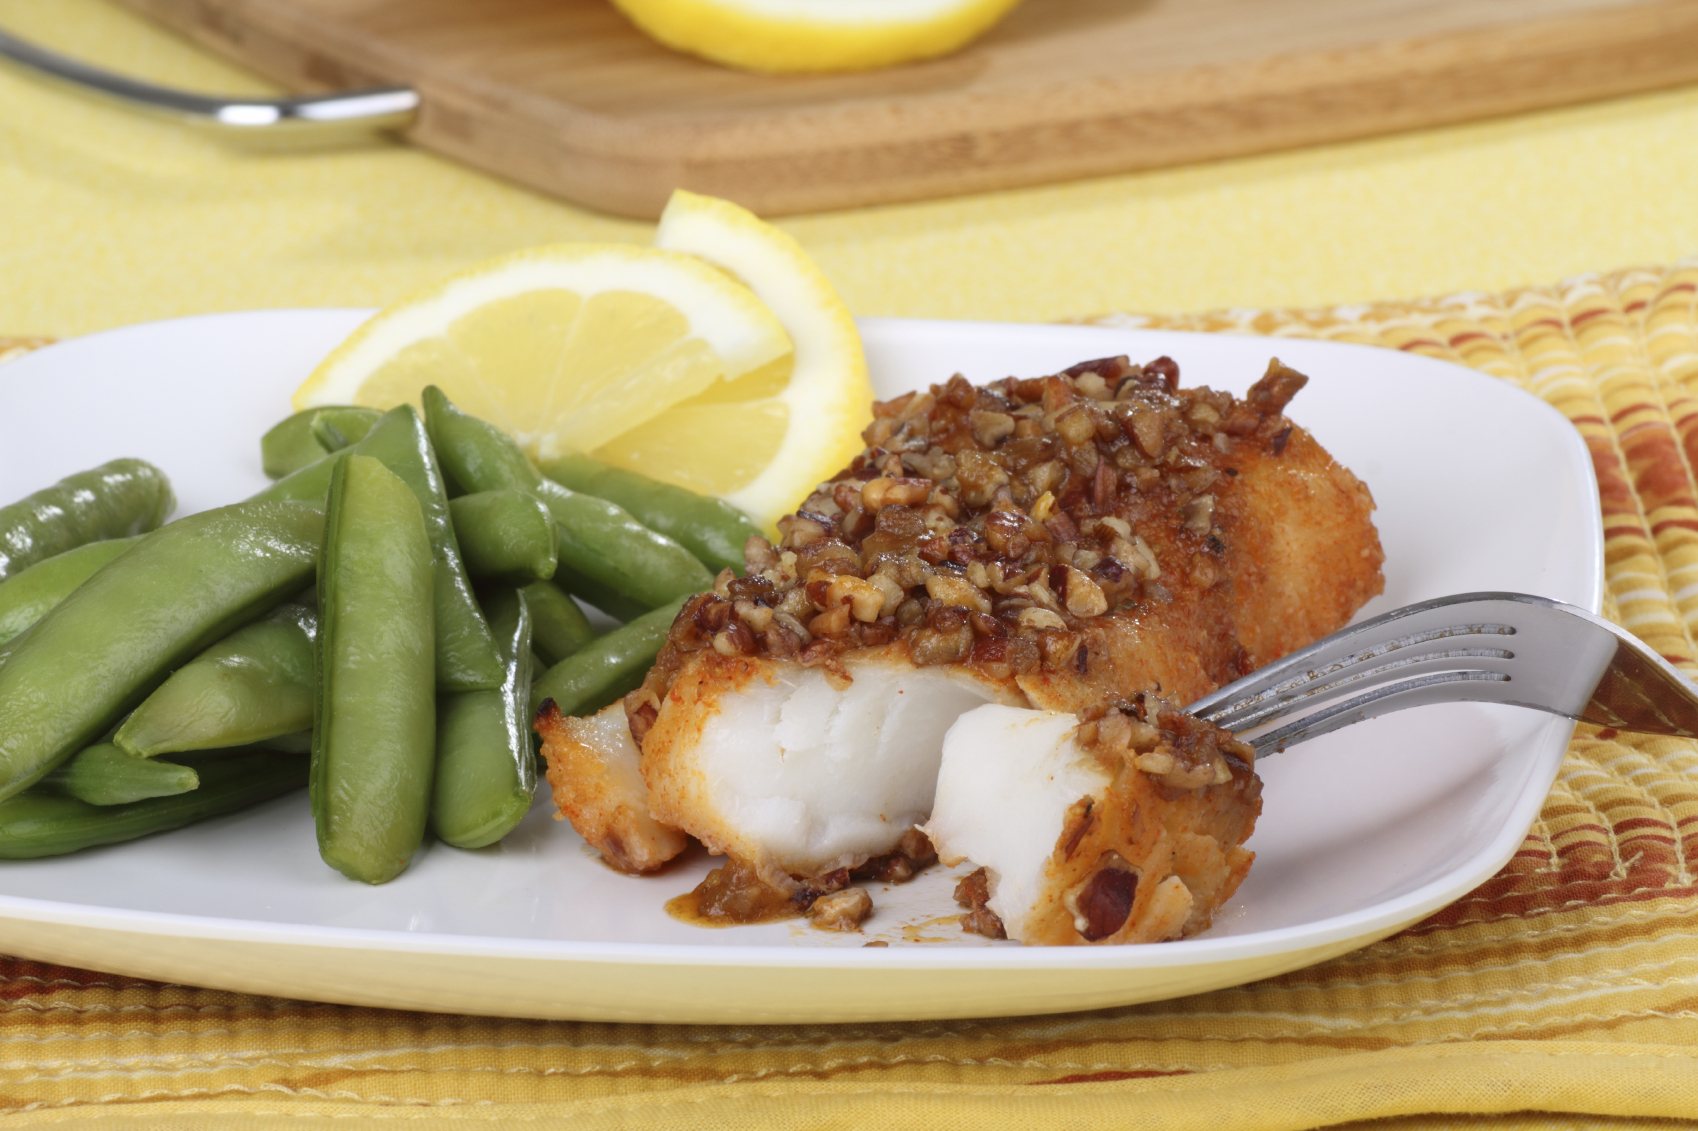 Cod with lemon zest and nuts: Merluzz b'qoxra ta' lewż u lumi